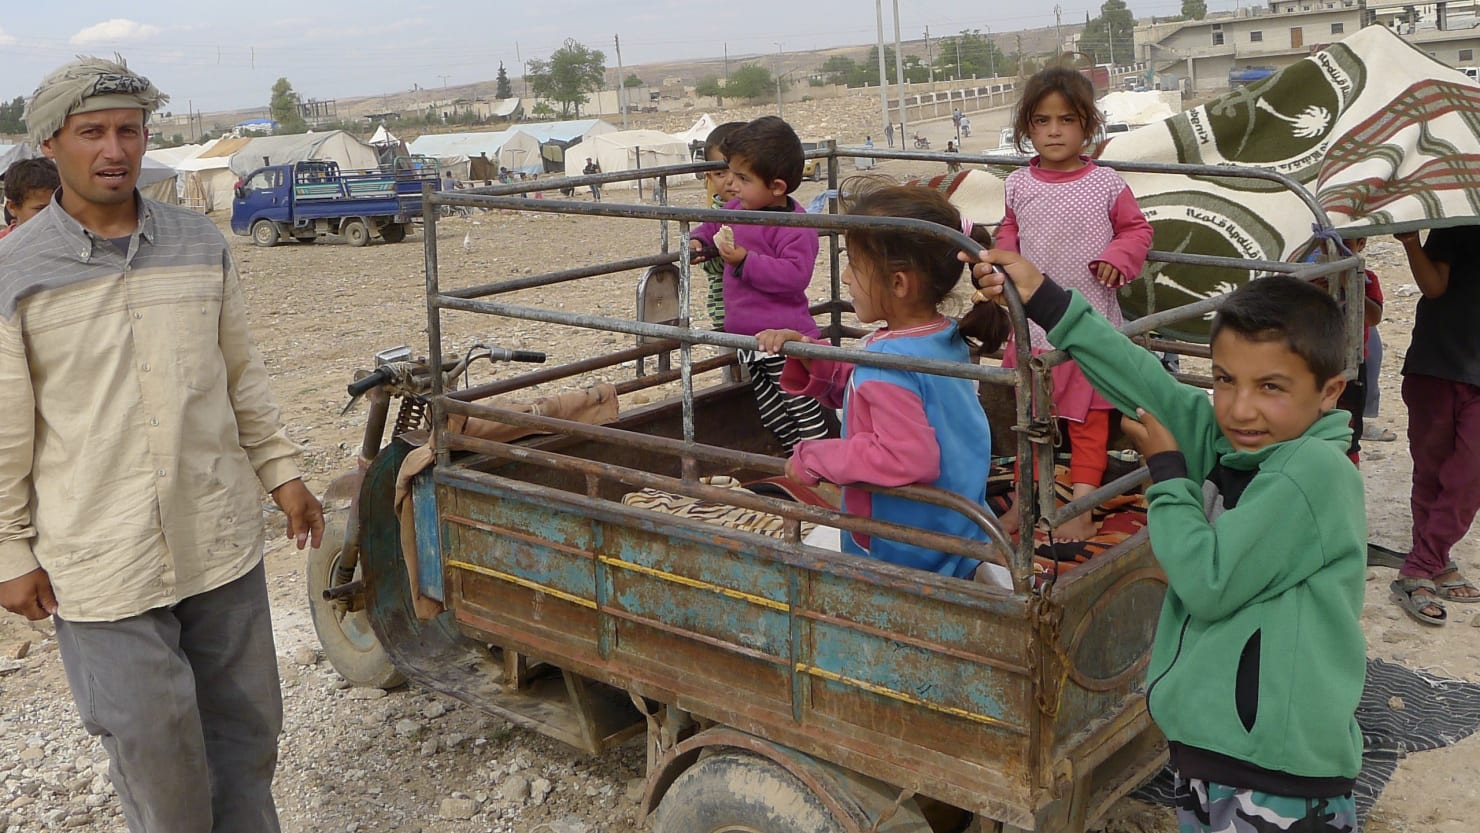 U.S. Helps Drive 200,000 Syrians From Their Homes